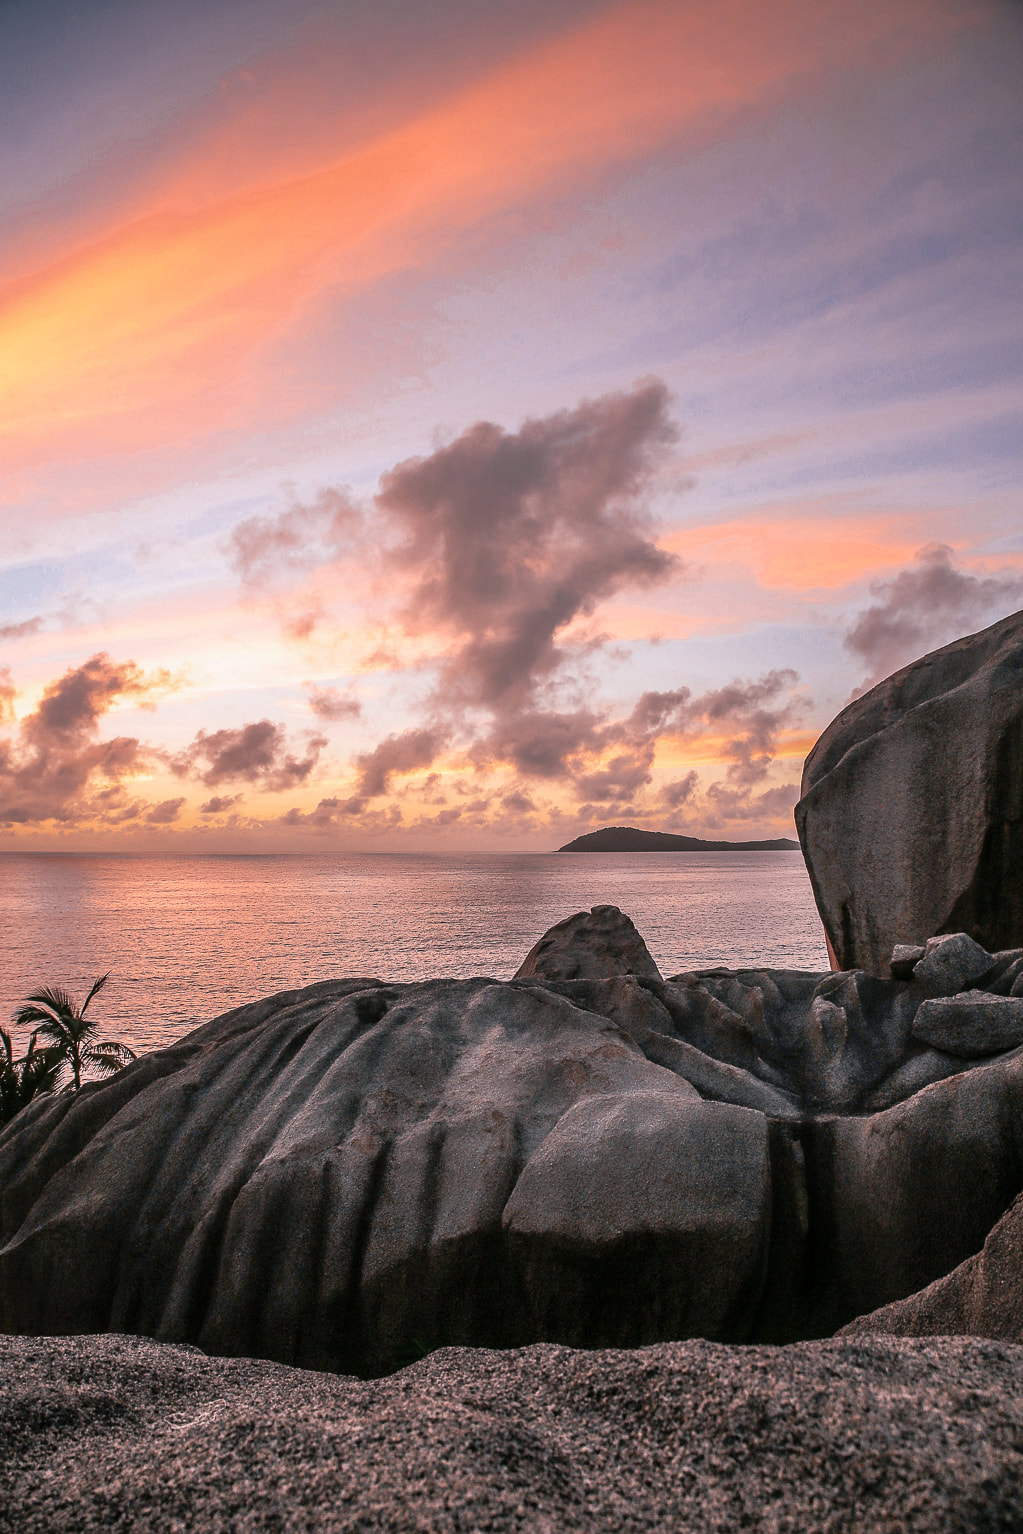 Sunrise in The Seychelles by The Belle Blog